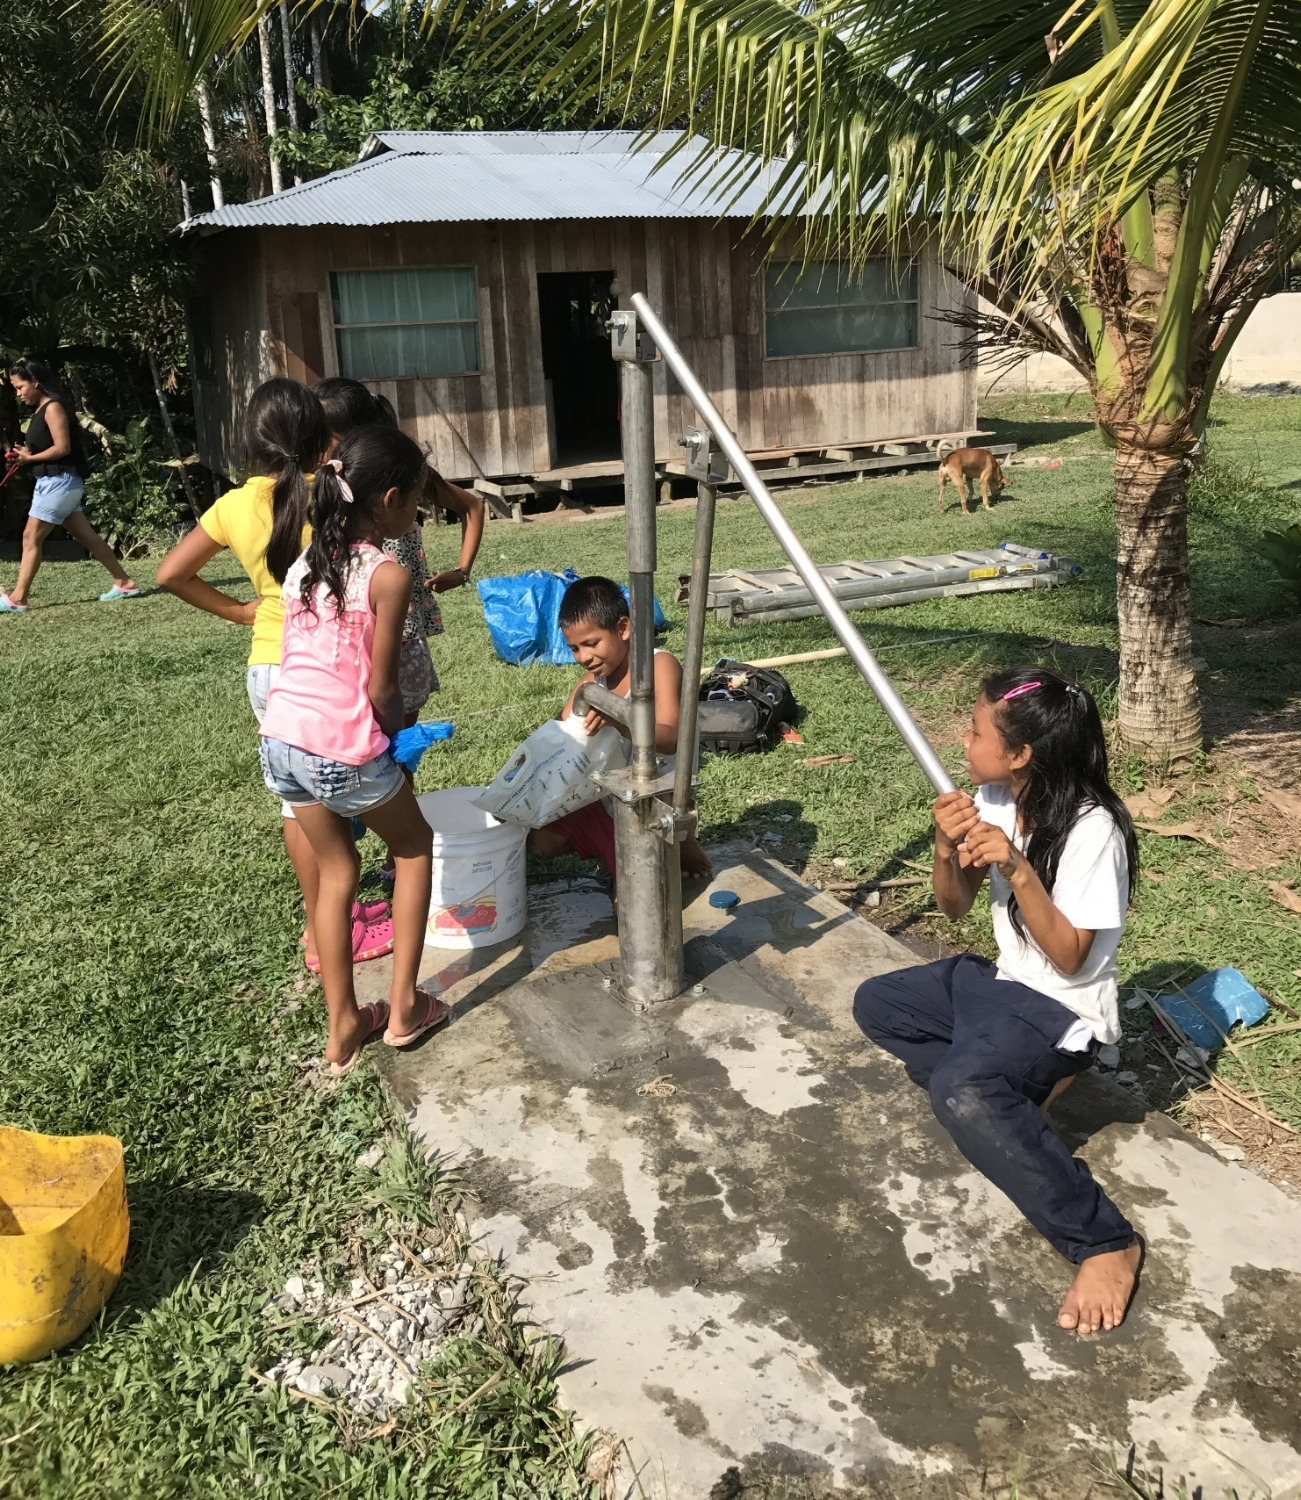 Children enjoy the water of a repaired well in the Amazon